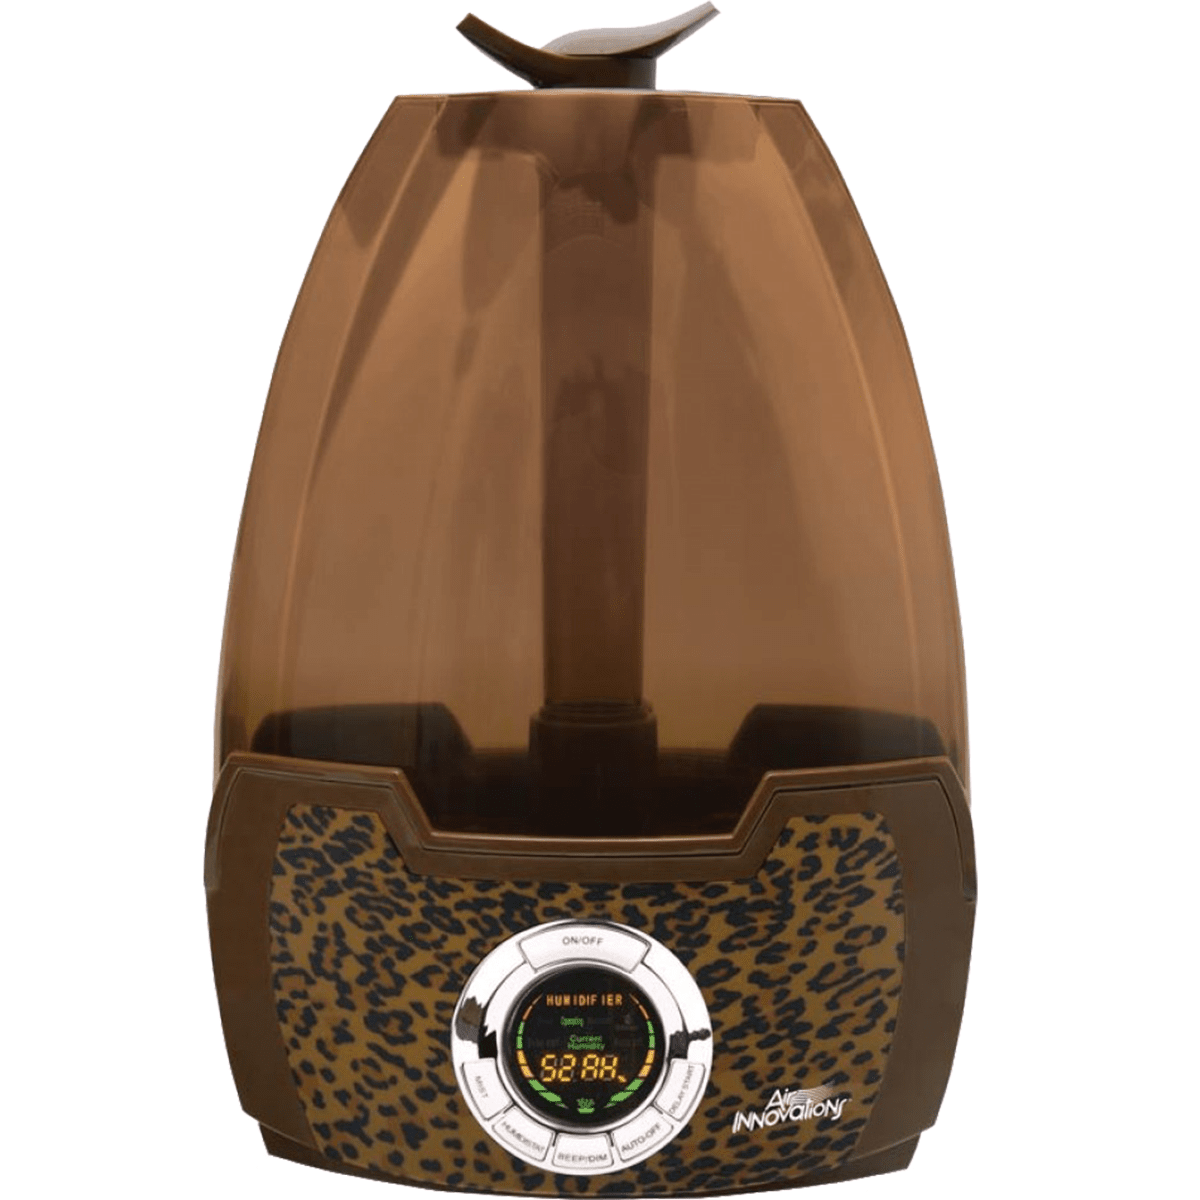 Air Innovations Cool Mist Digital Humidifier - Leopard (mh-602-leopard)